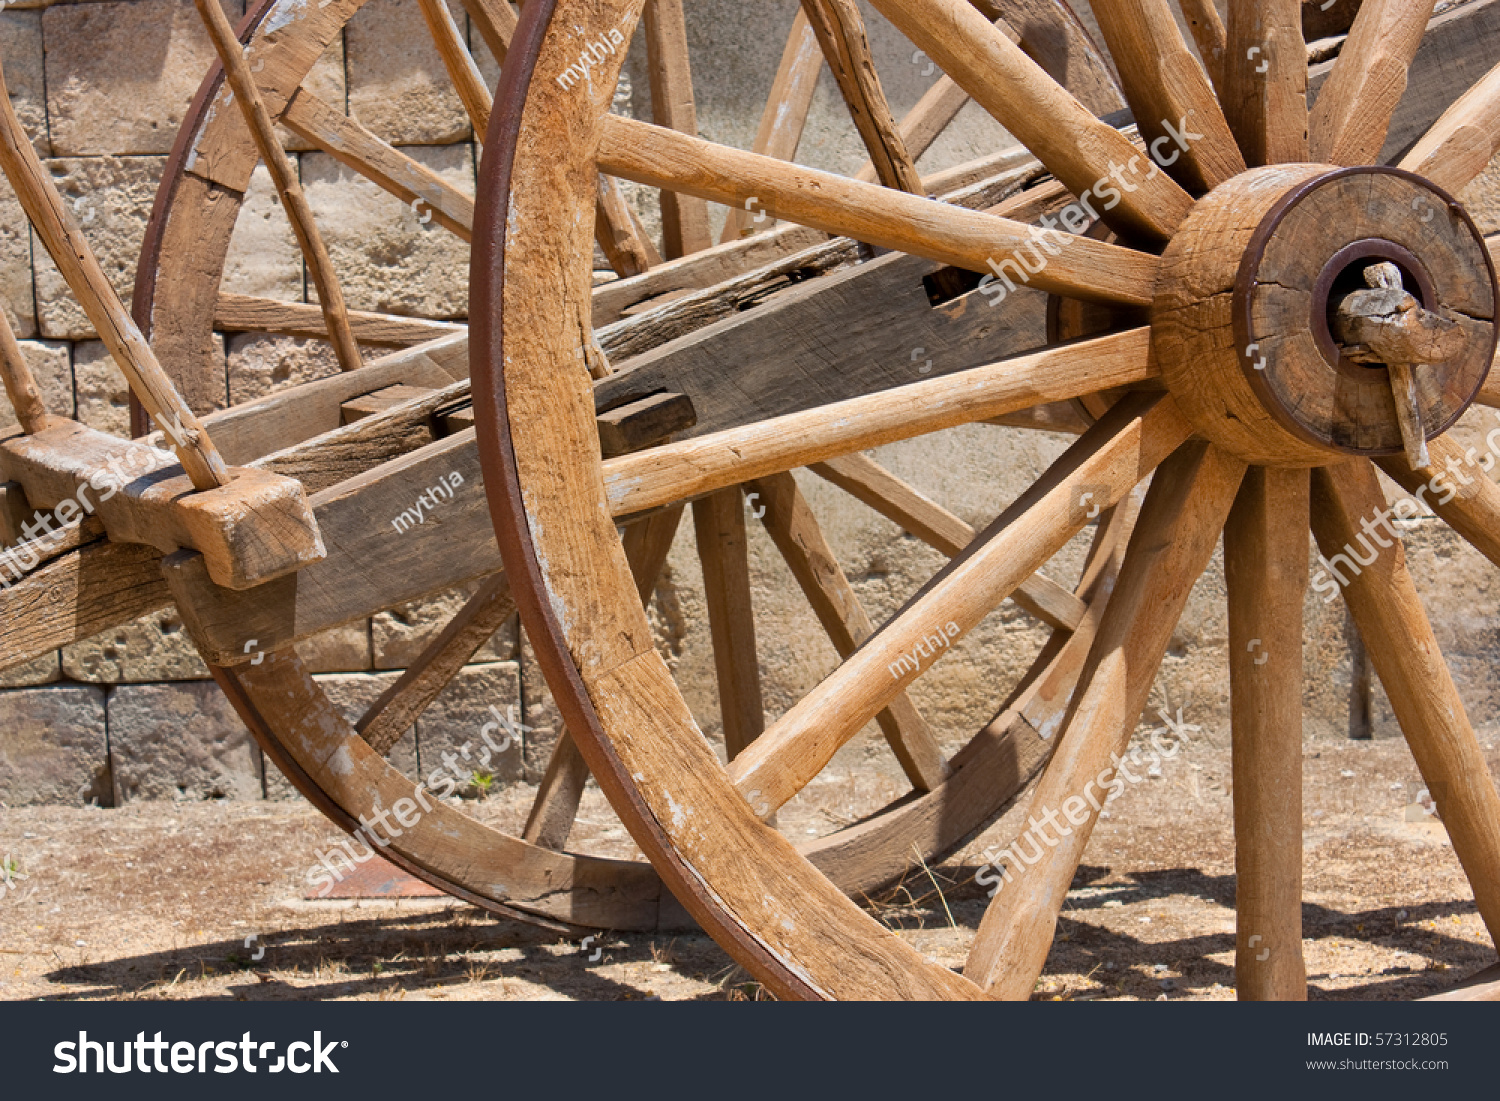 Old Wooden Cart Close Up With Large Wooden Wheels. Stock